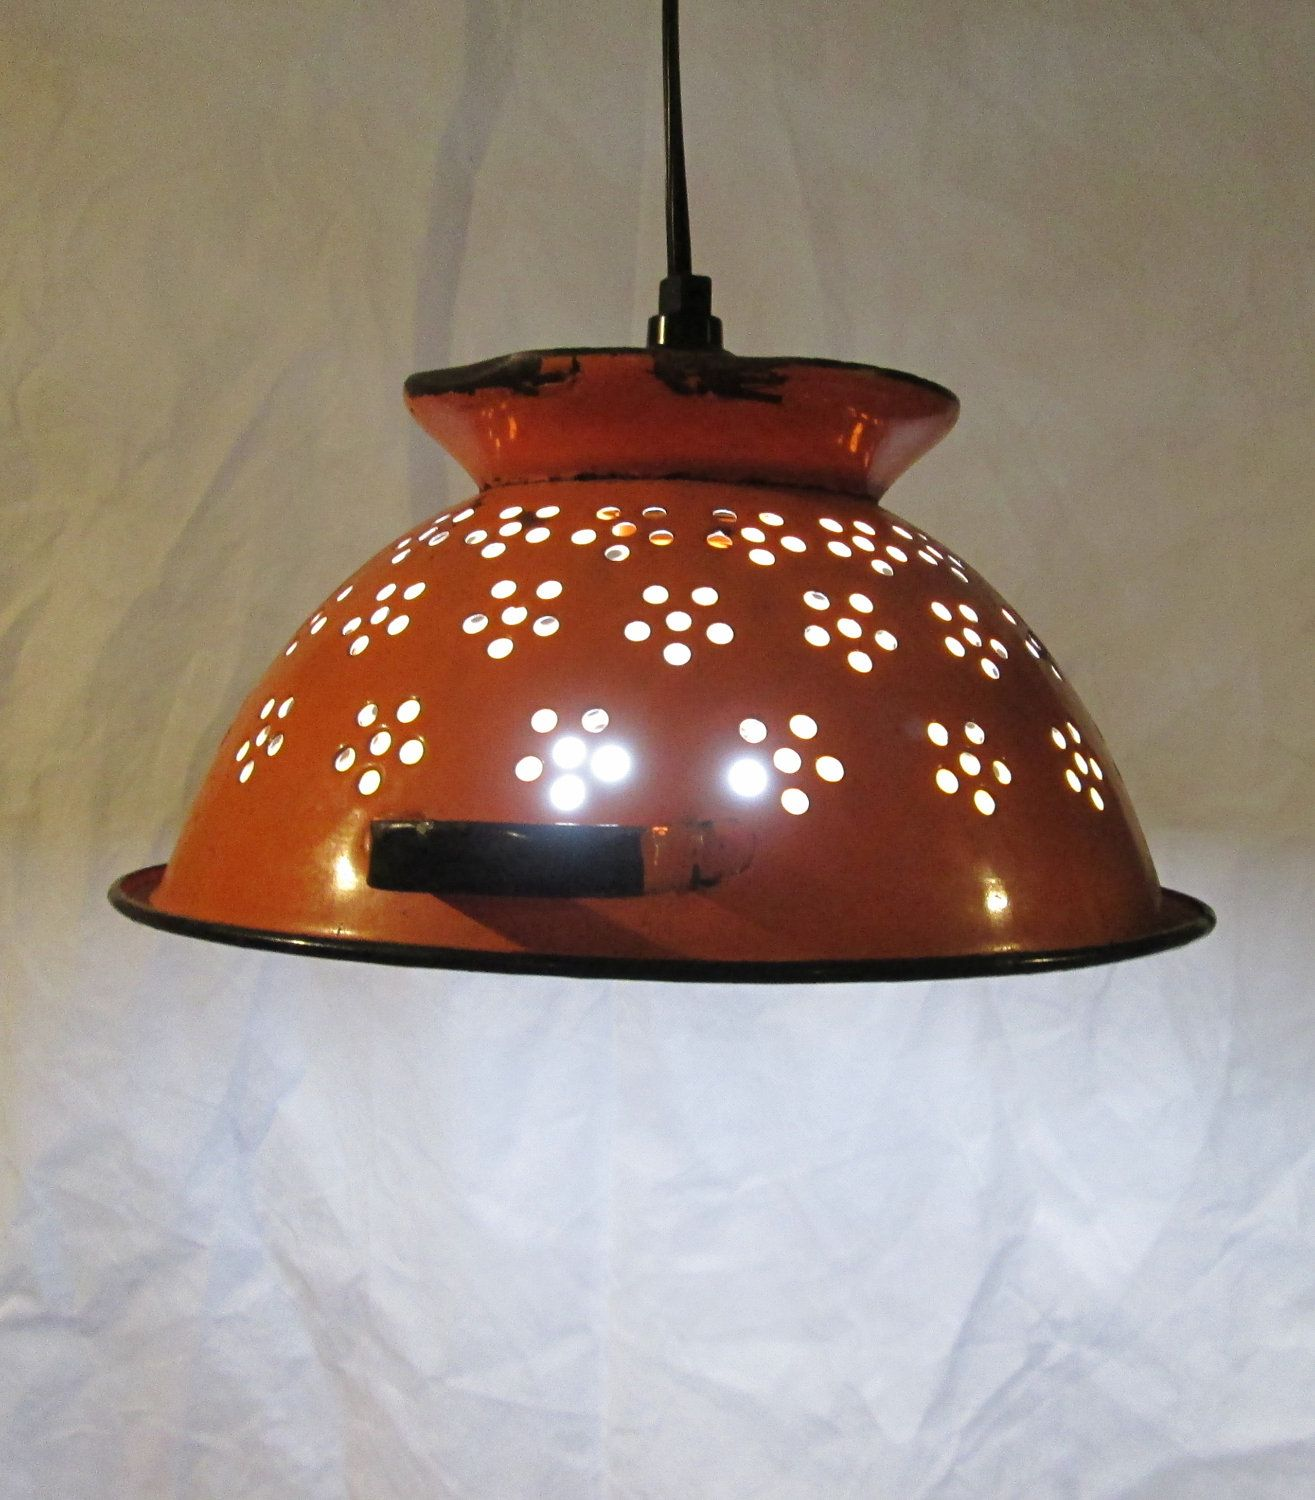 Upcycled Lamps And Lighting Ideas: Vintage Colandar, Upcycled Pendant Light, Repurposed